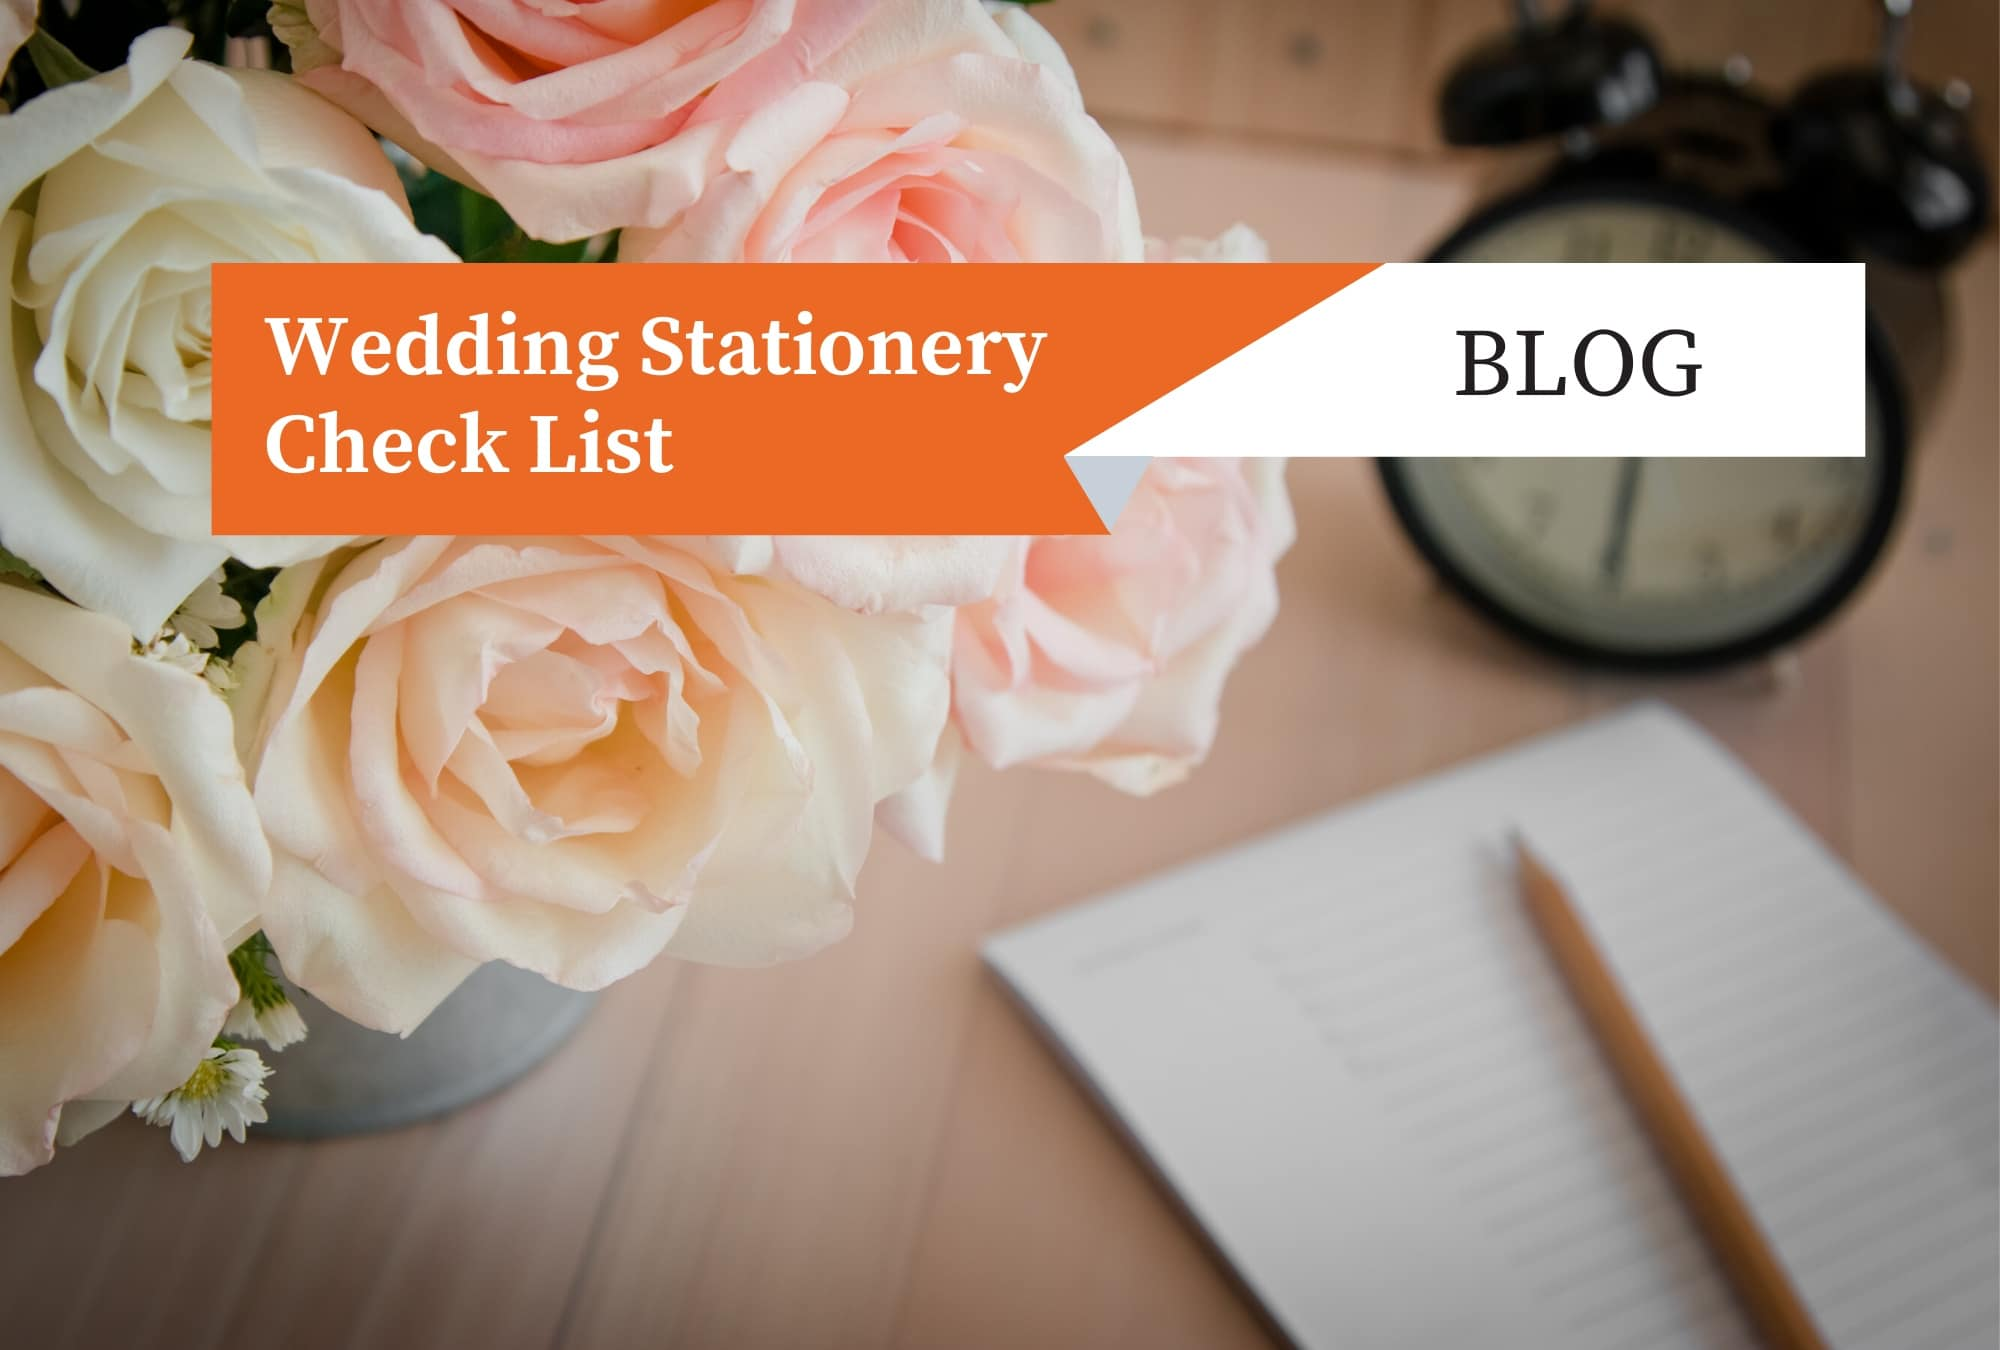 Wedding Stationery Check List